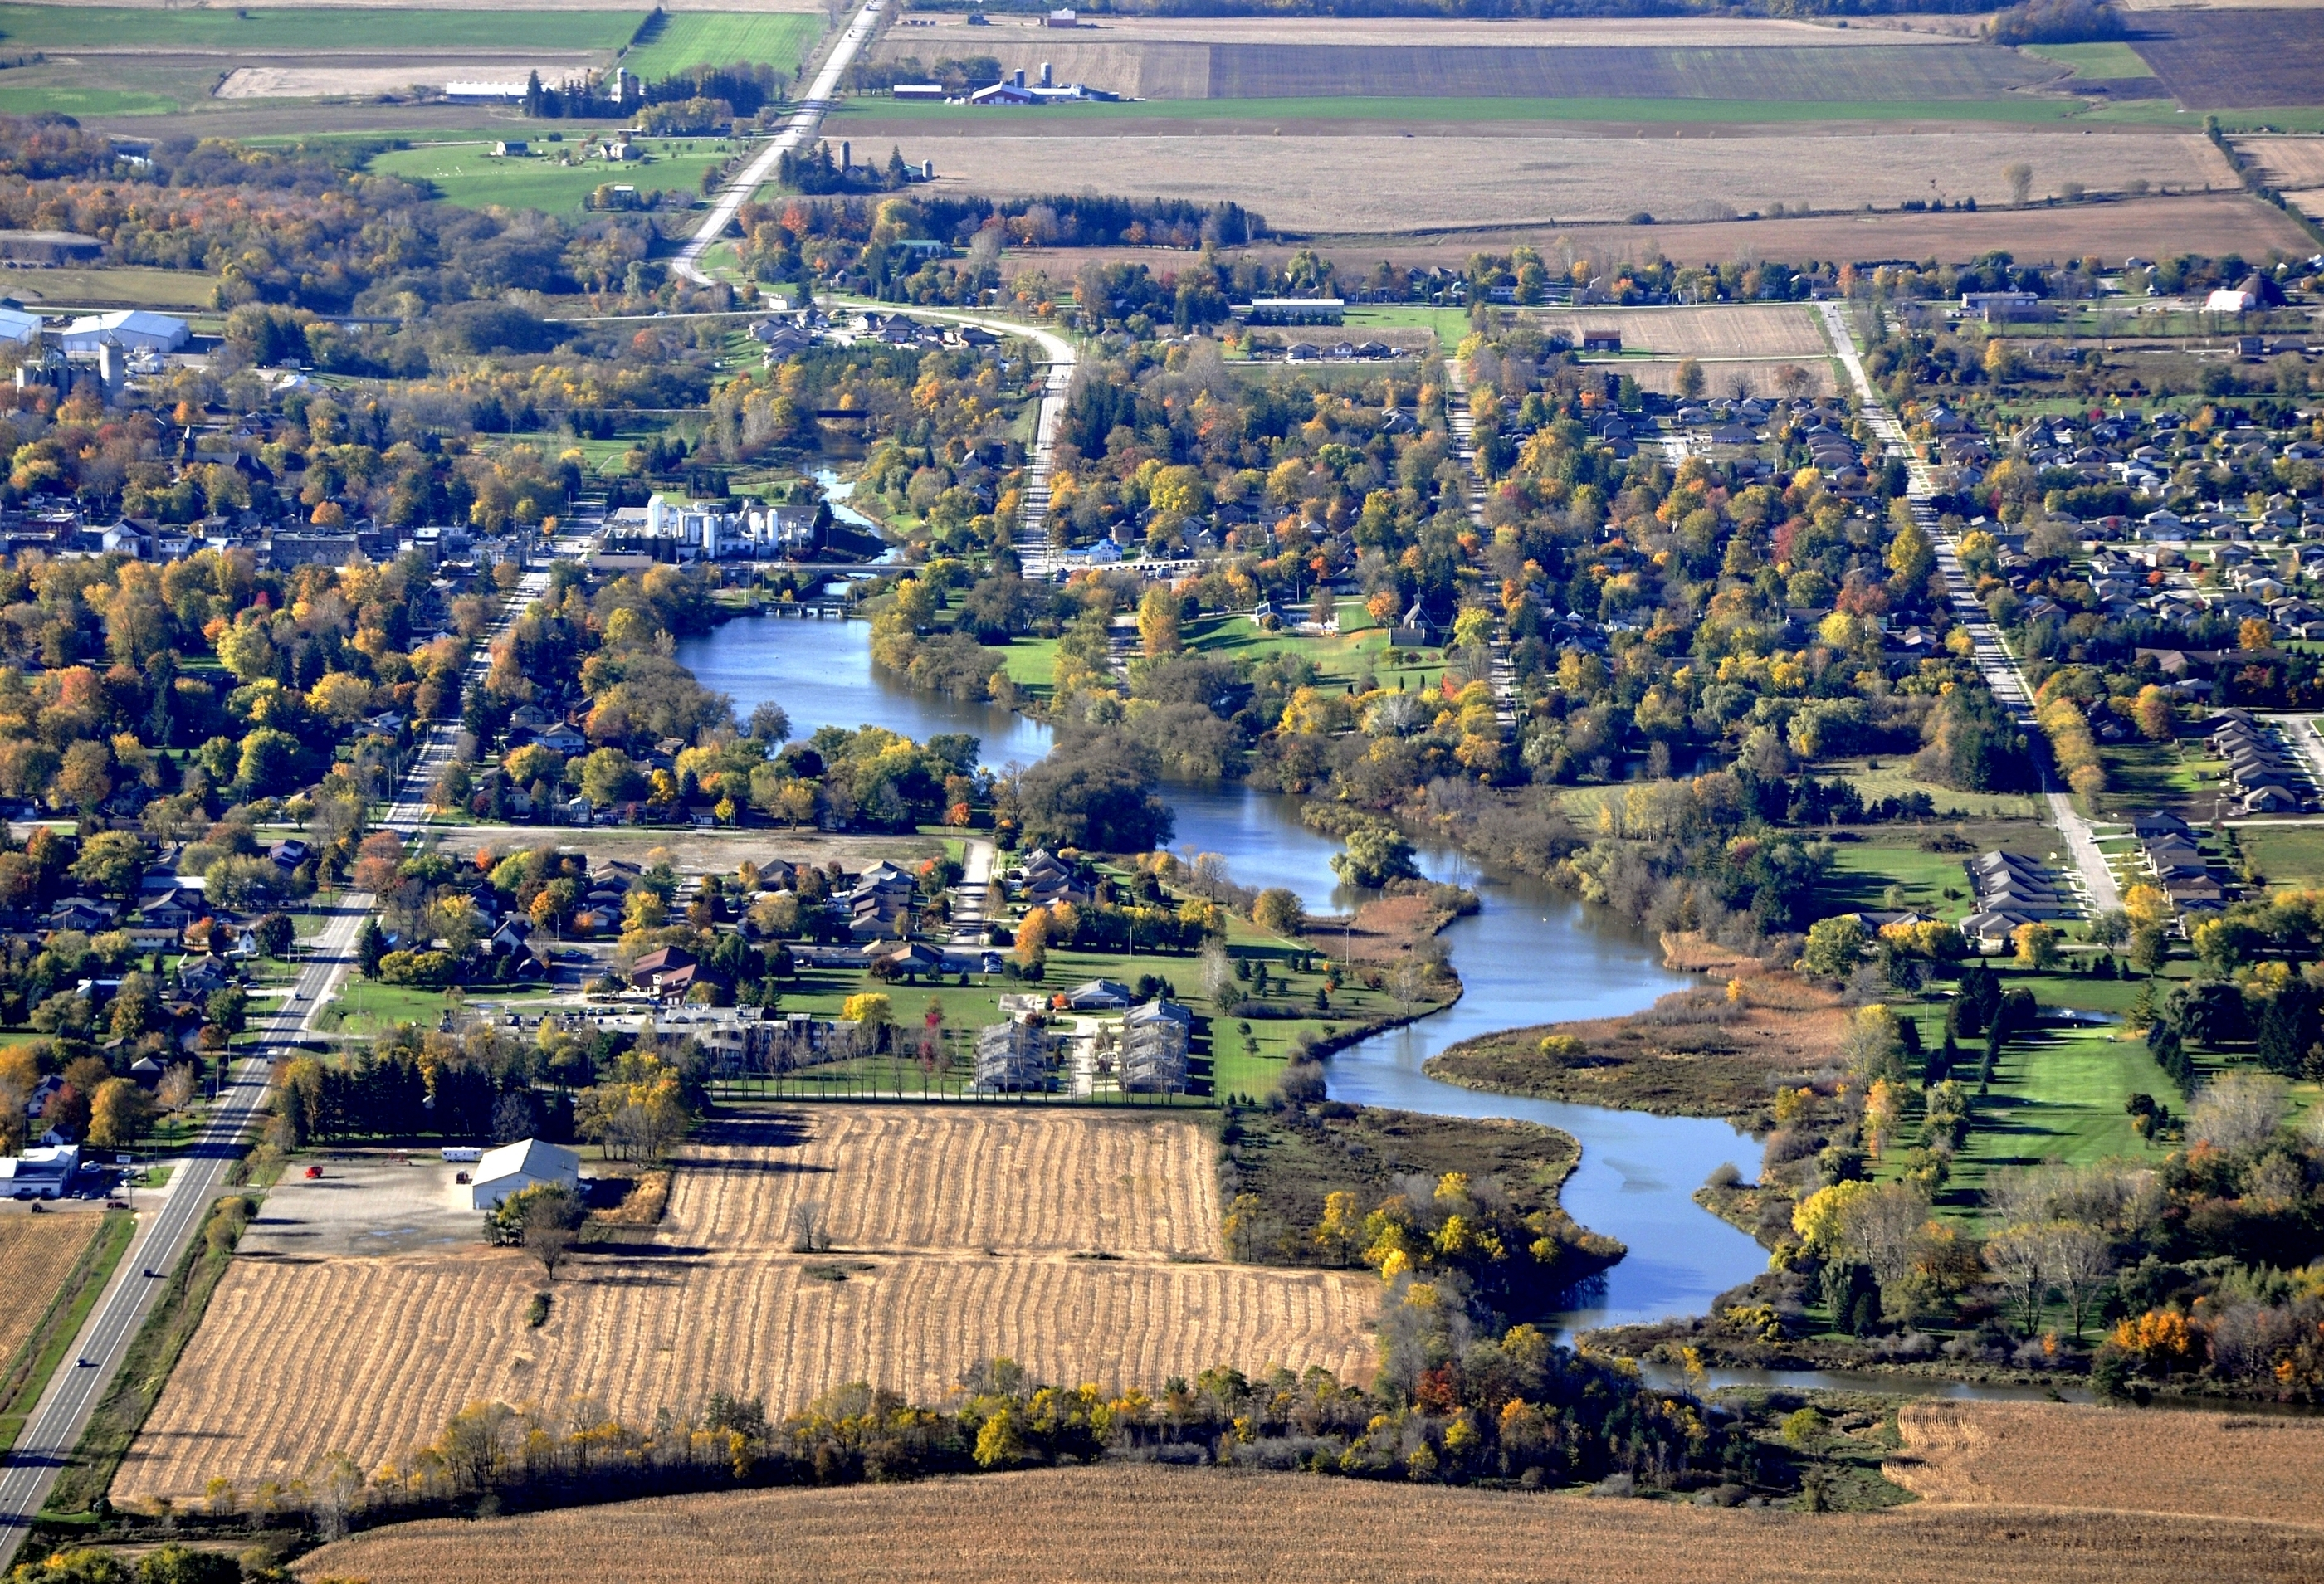 Aerial view of community in Mitchell, ON